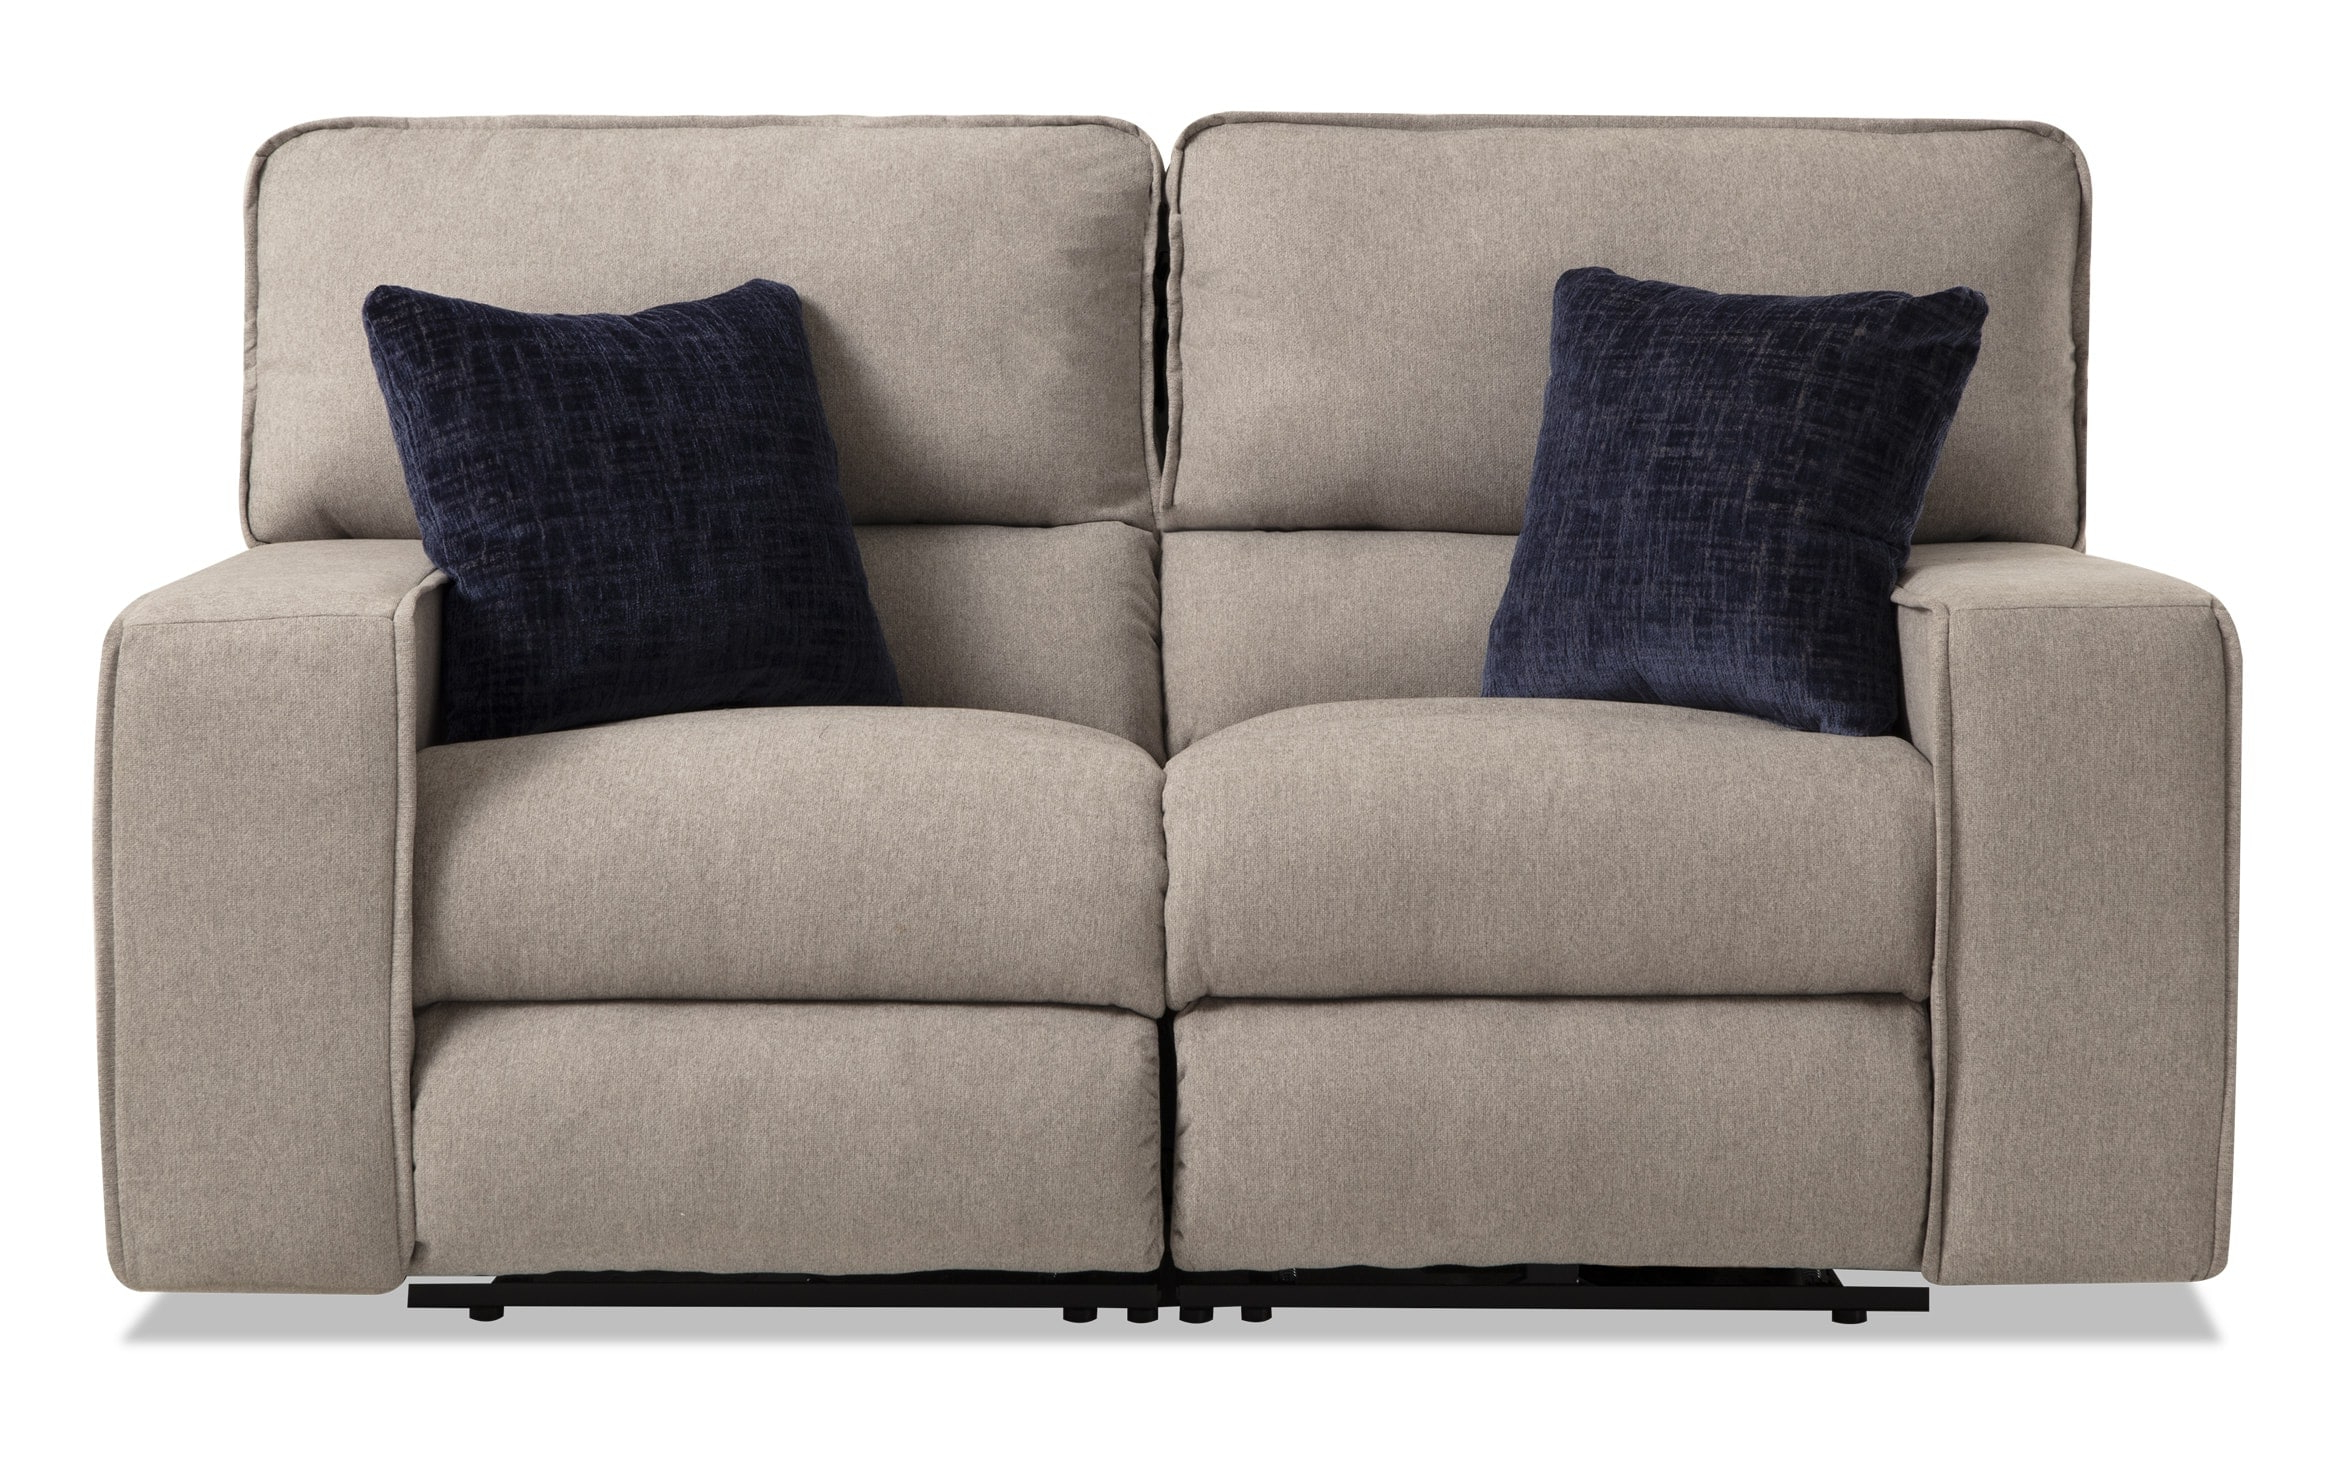 Bobs Furniture Reclining Sofas – Latest Sofa Pictures Regarding Most Current Trailblazer Gray Leather Power Reclining Sofas (View 10 of 20)